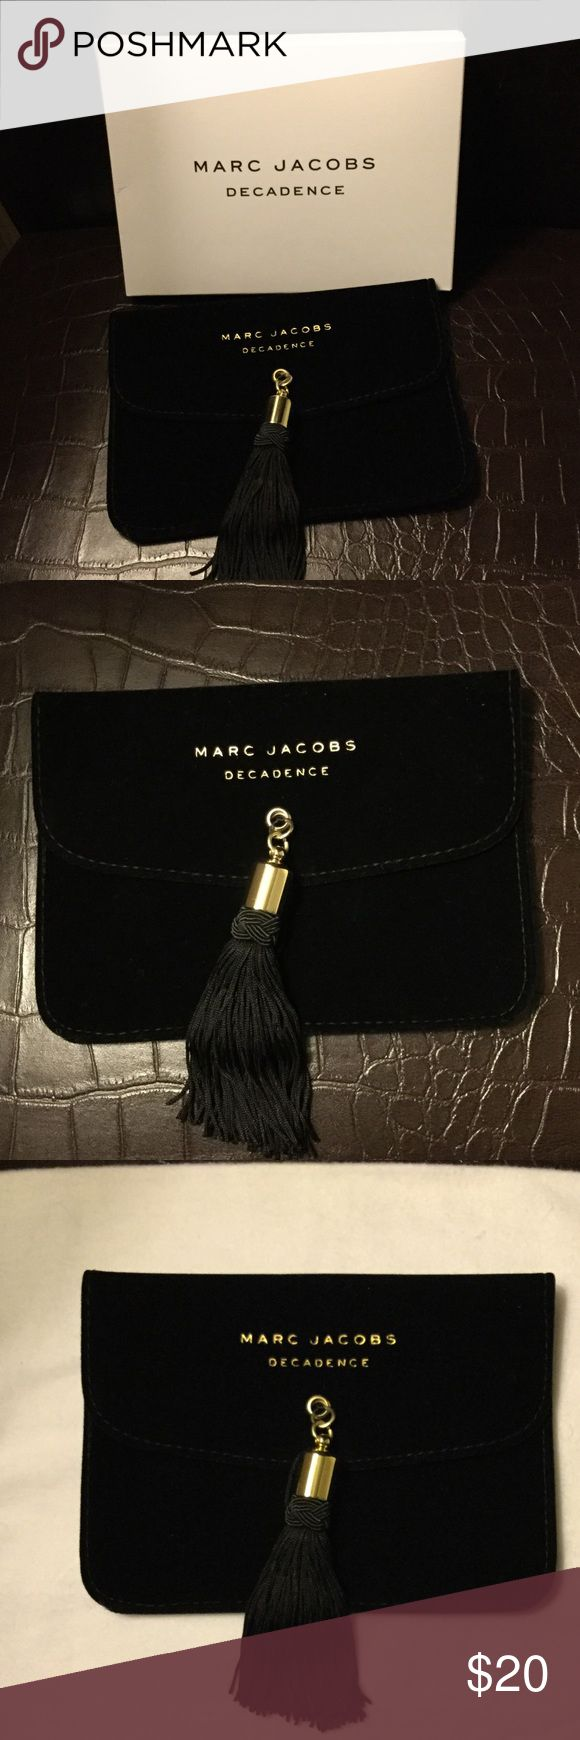 """Marc Jacobs Decadence Make-Up Pouch Marc Jacobs Decadence Make-Up Pouch, 7.25"""" by 5.25"""", Black Velvet with Black tassel, gold hardware, never used Marc Jacobs Bags Cosmetic Bags & Cases"""